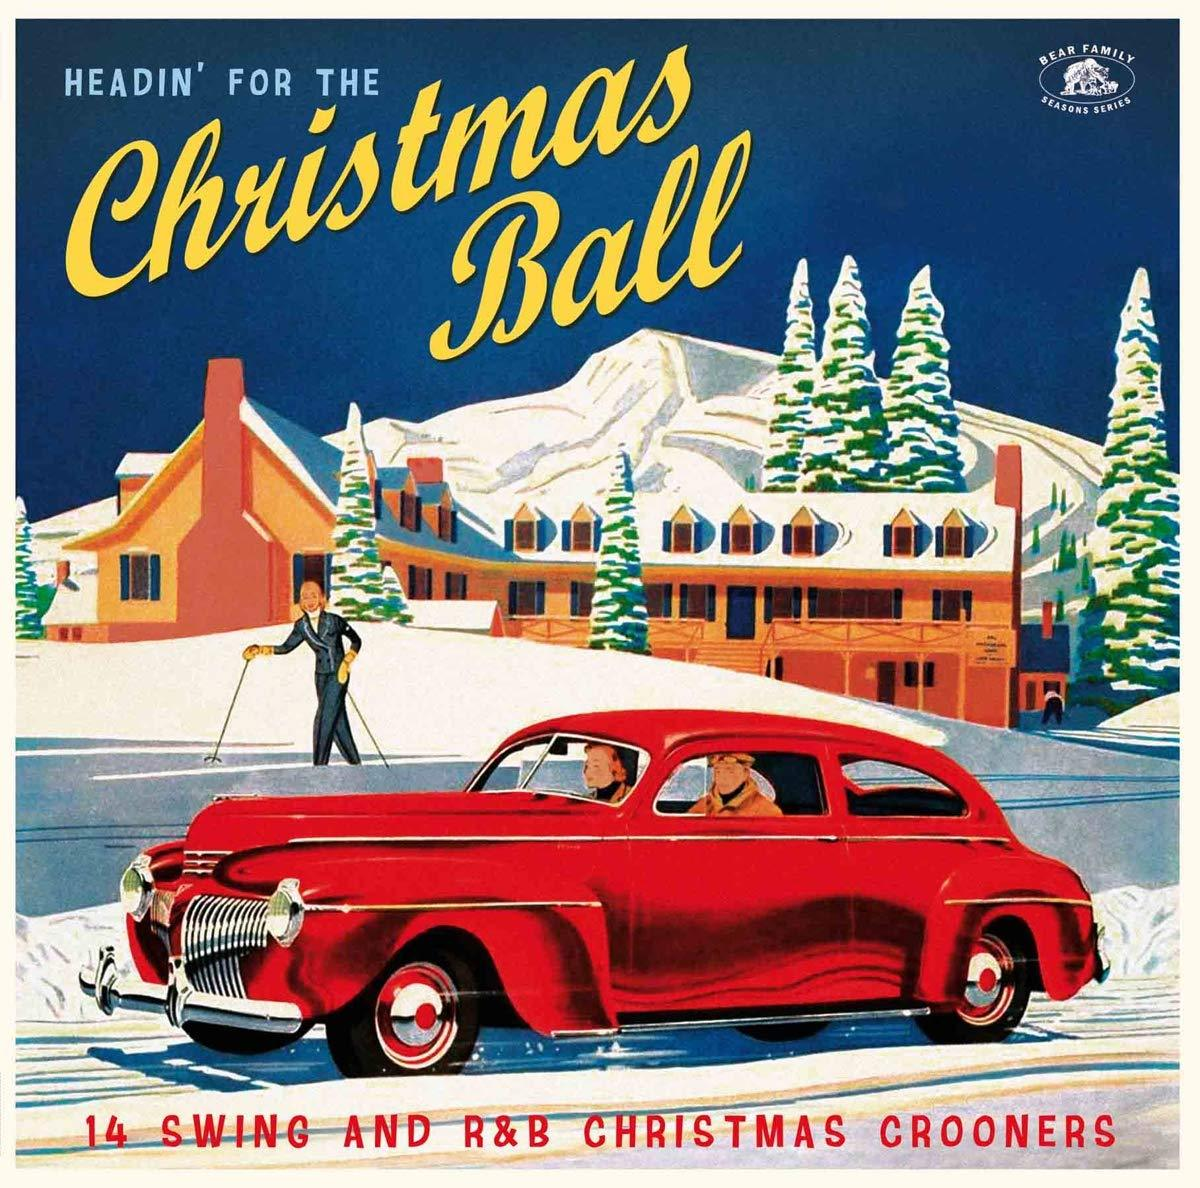 Various Artists - Headin' For The Christmas Ball: 14 Swing And R&B Christmas Crooners [LP] (Red 140 Gram Vinyl, X-mas card)